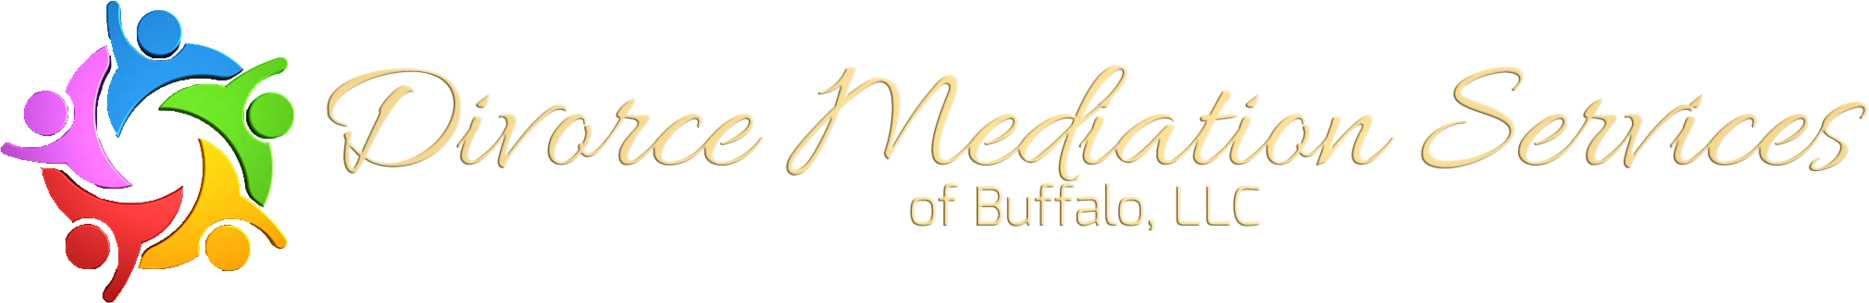 Divorce Mediation Services of Buffalo